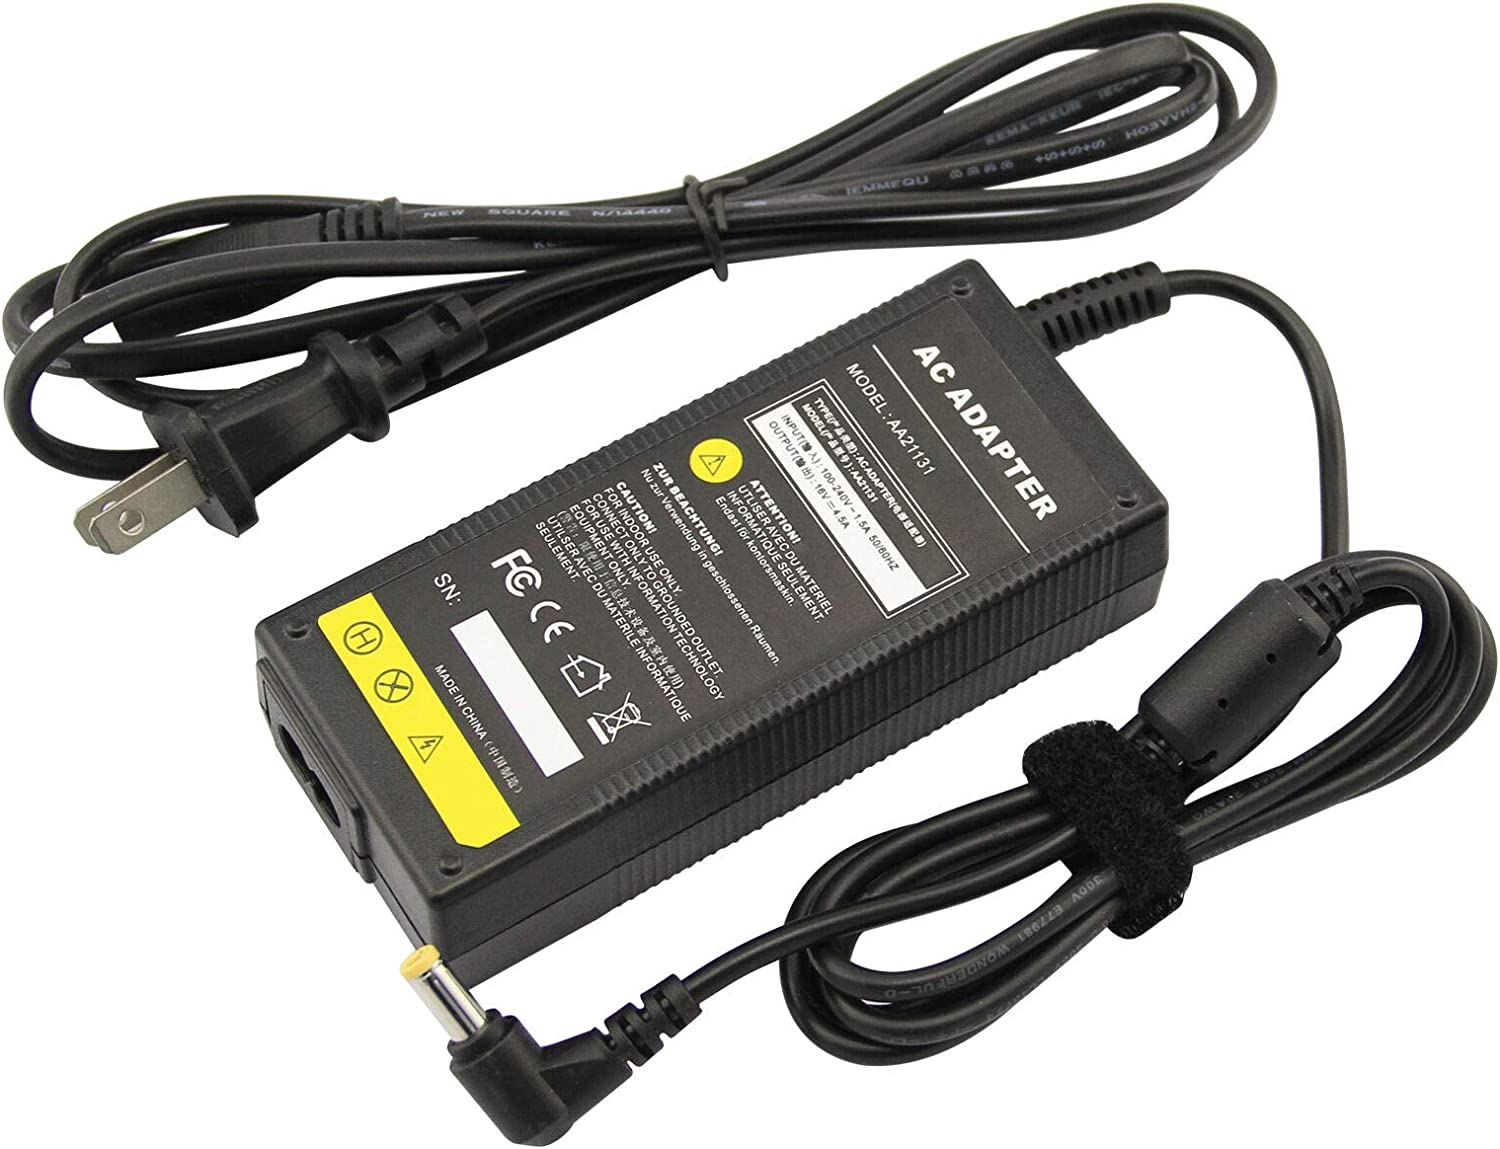 yan AC Adapter Charger for IBM ThinkPad 1400 1500 235 240 310 365 A31 E530 CF-AA1623